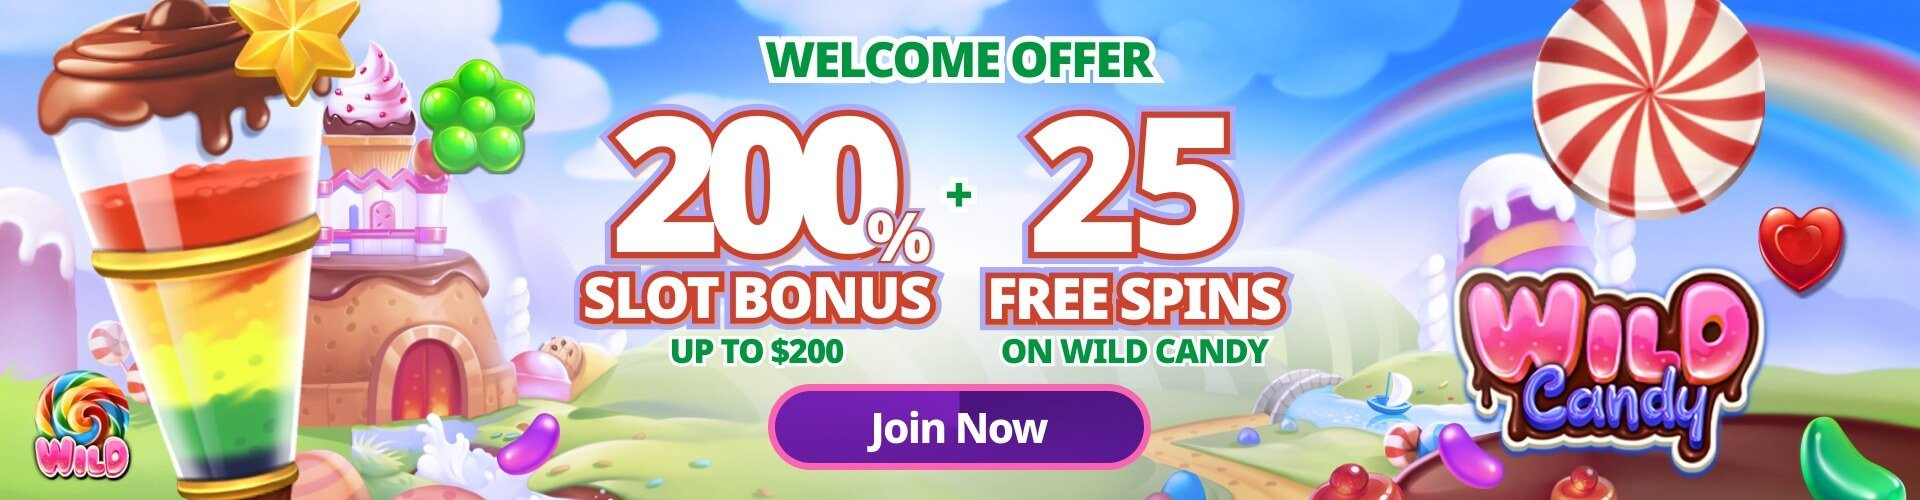 Welcome Offer - Bingo52